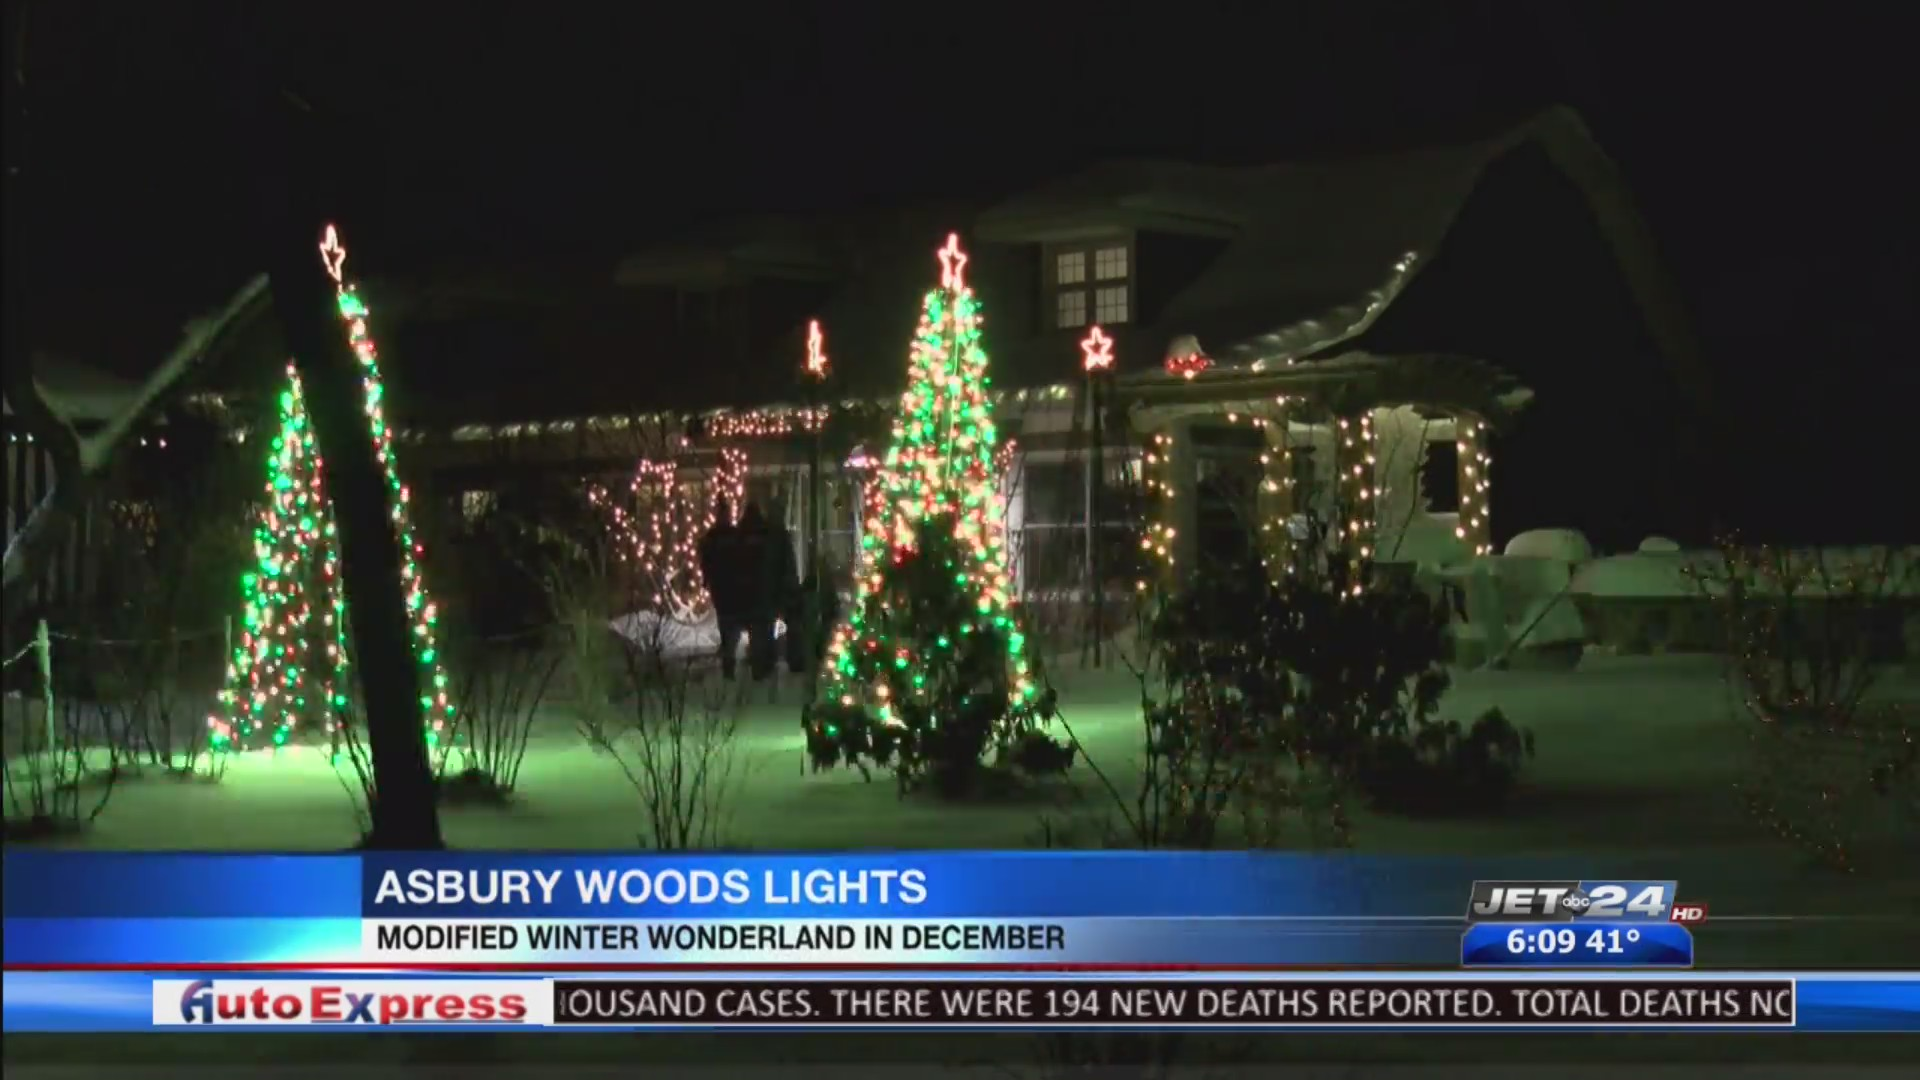 Walk Through Holiday Lights At No Cost All December Long During Asbury Woods Winter Wonderland Wjet Wfxp Yourerie Com